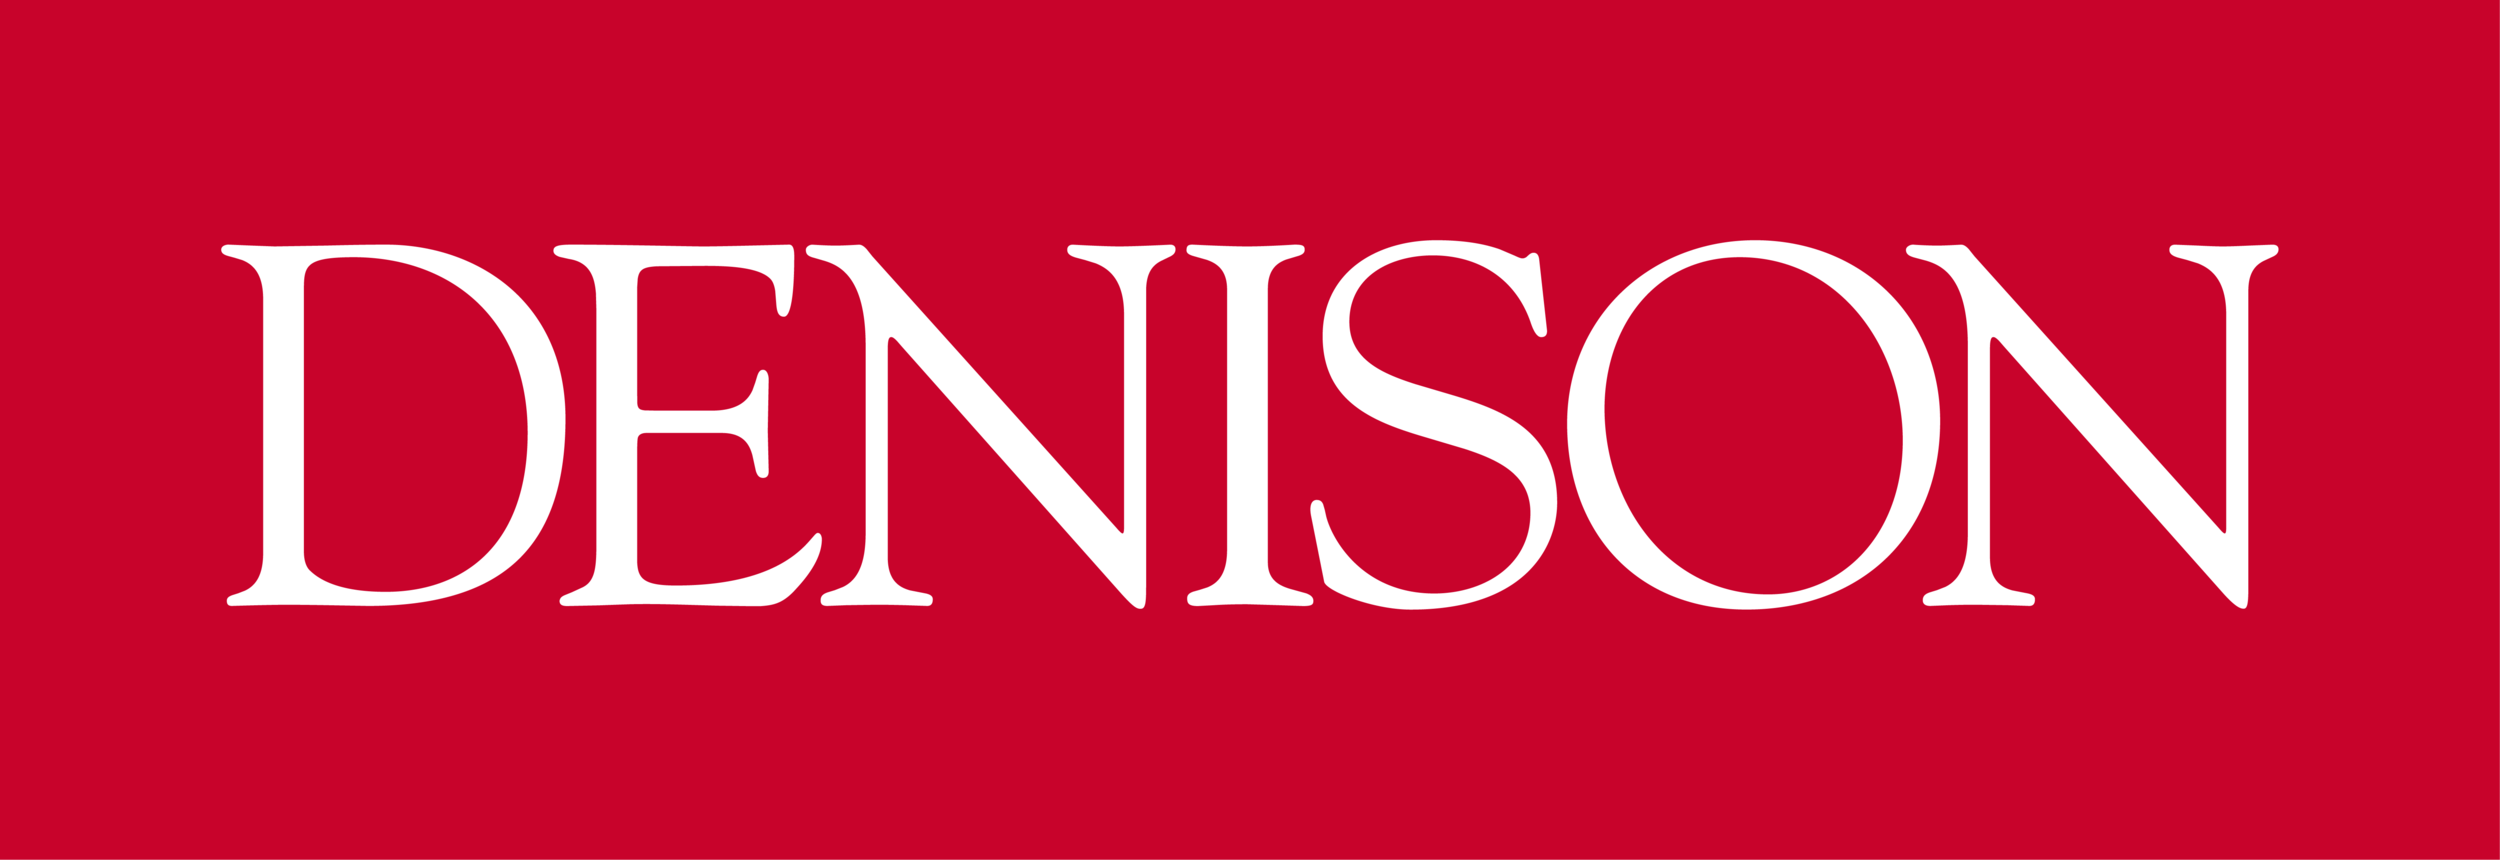 denison-university-logo.png